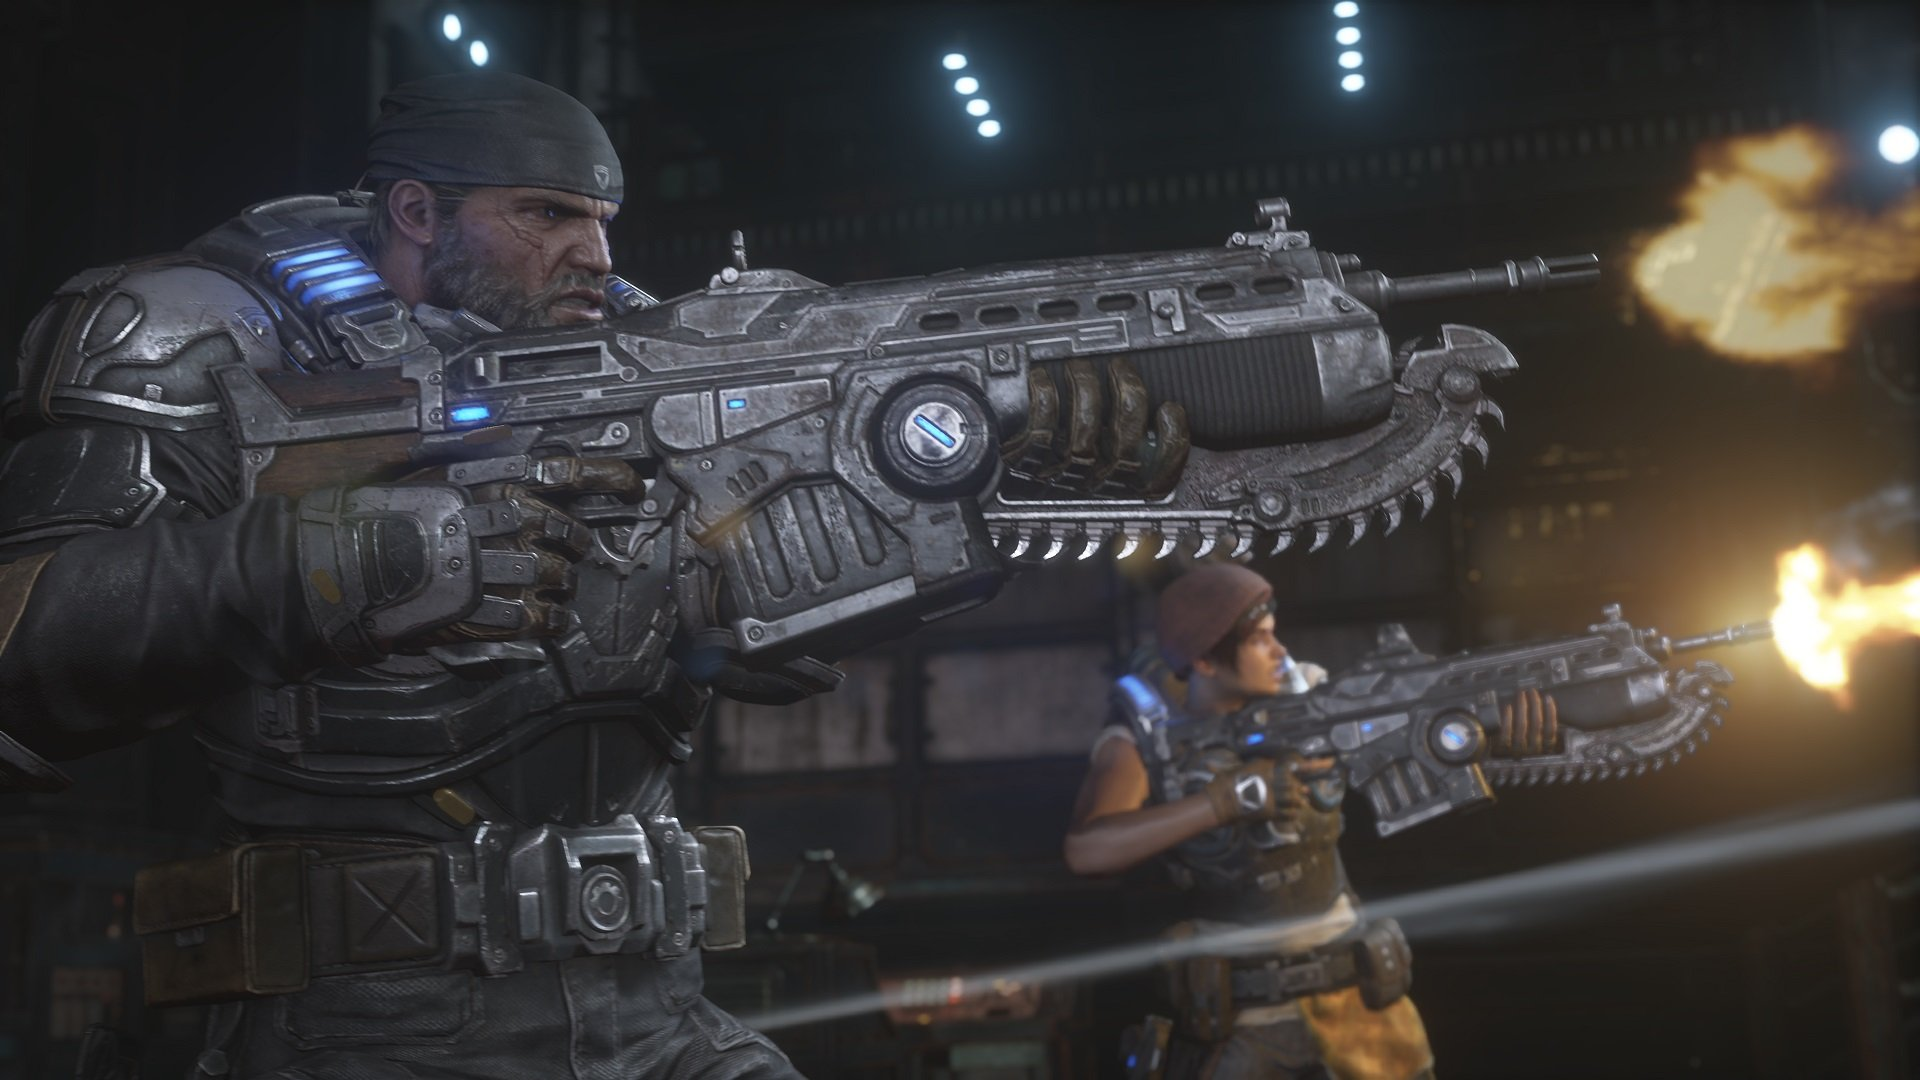 An optimized version of Gears 5 running on an Xbox Series X